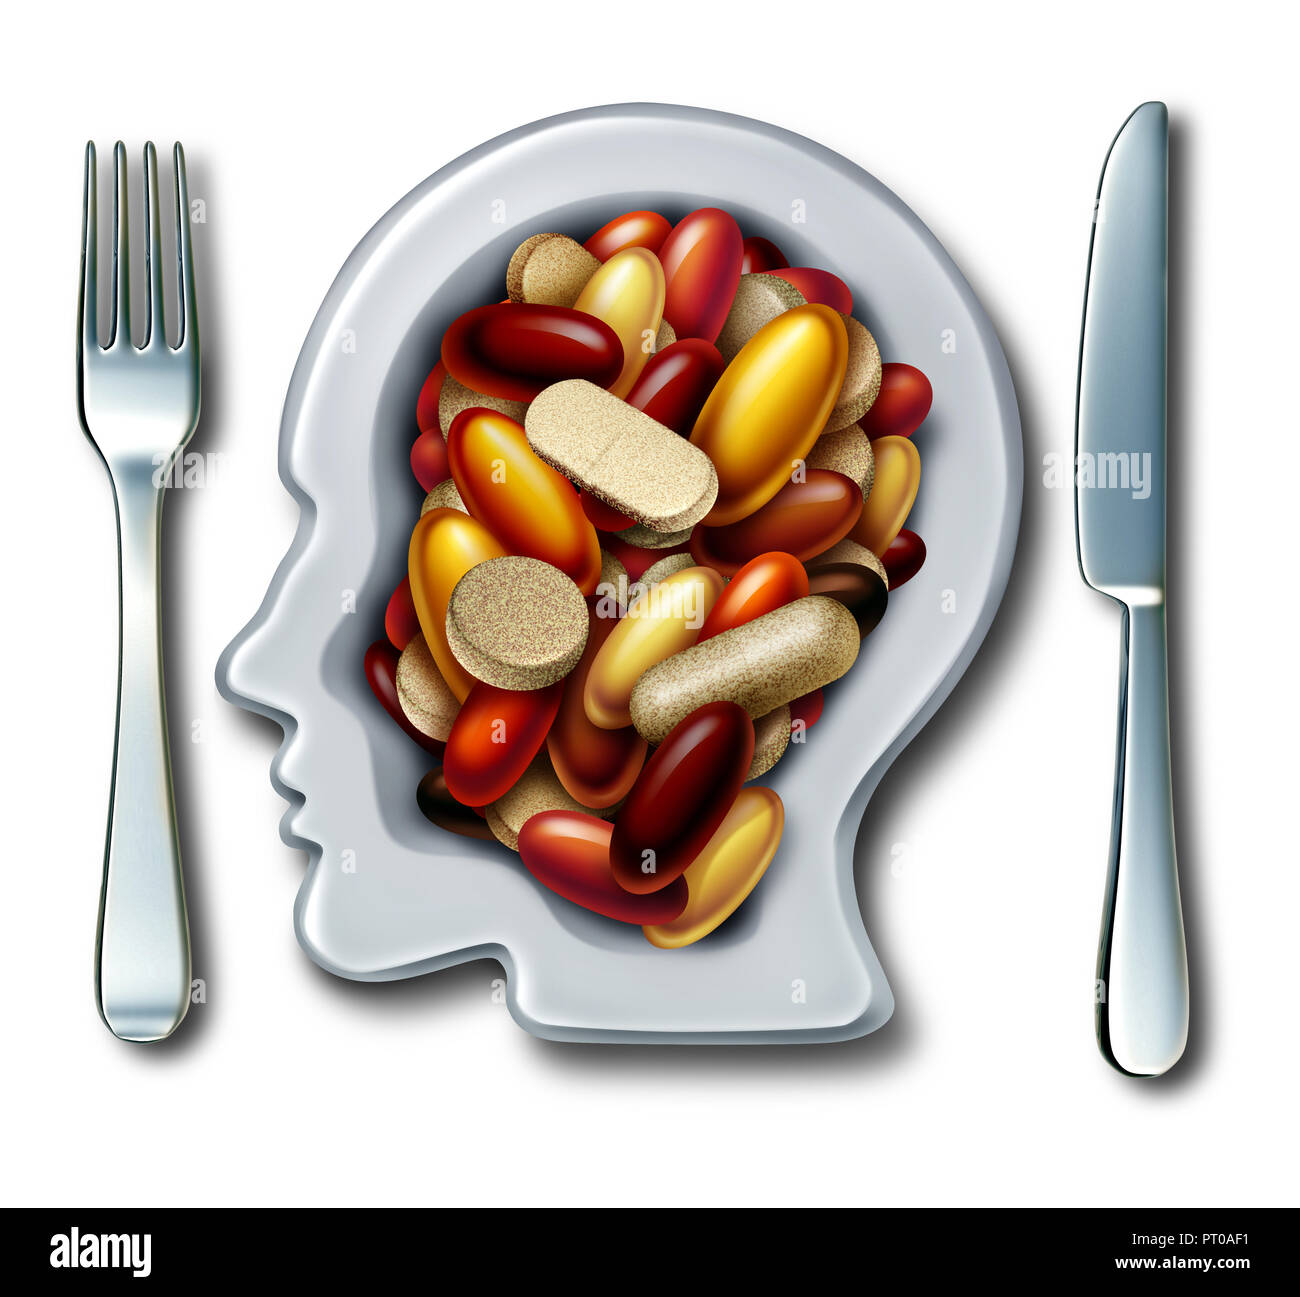 Health supplements and vitamin supplement as a plate shaped as a human with a group of capsule and pills as a natural nutrient medicine and dietary. - Stock Image